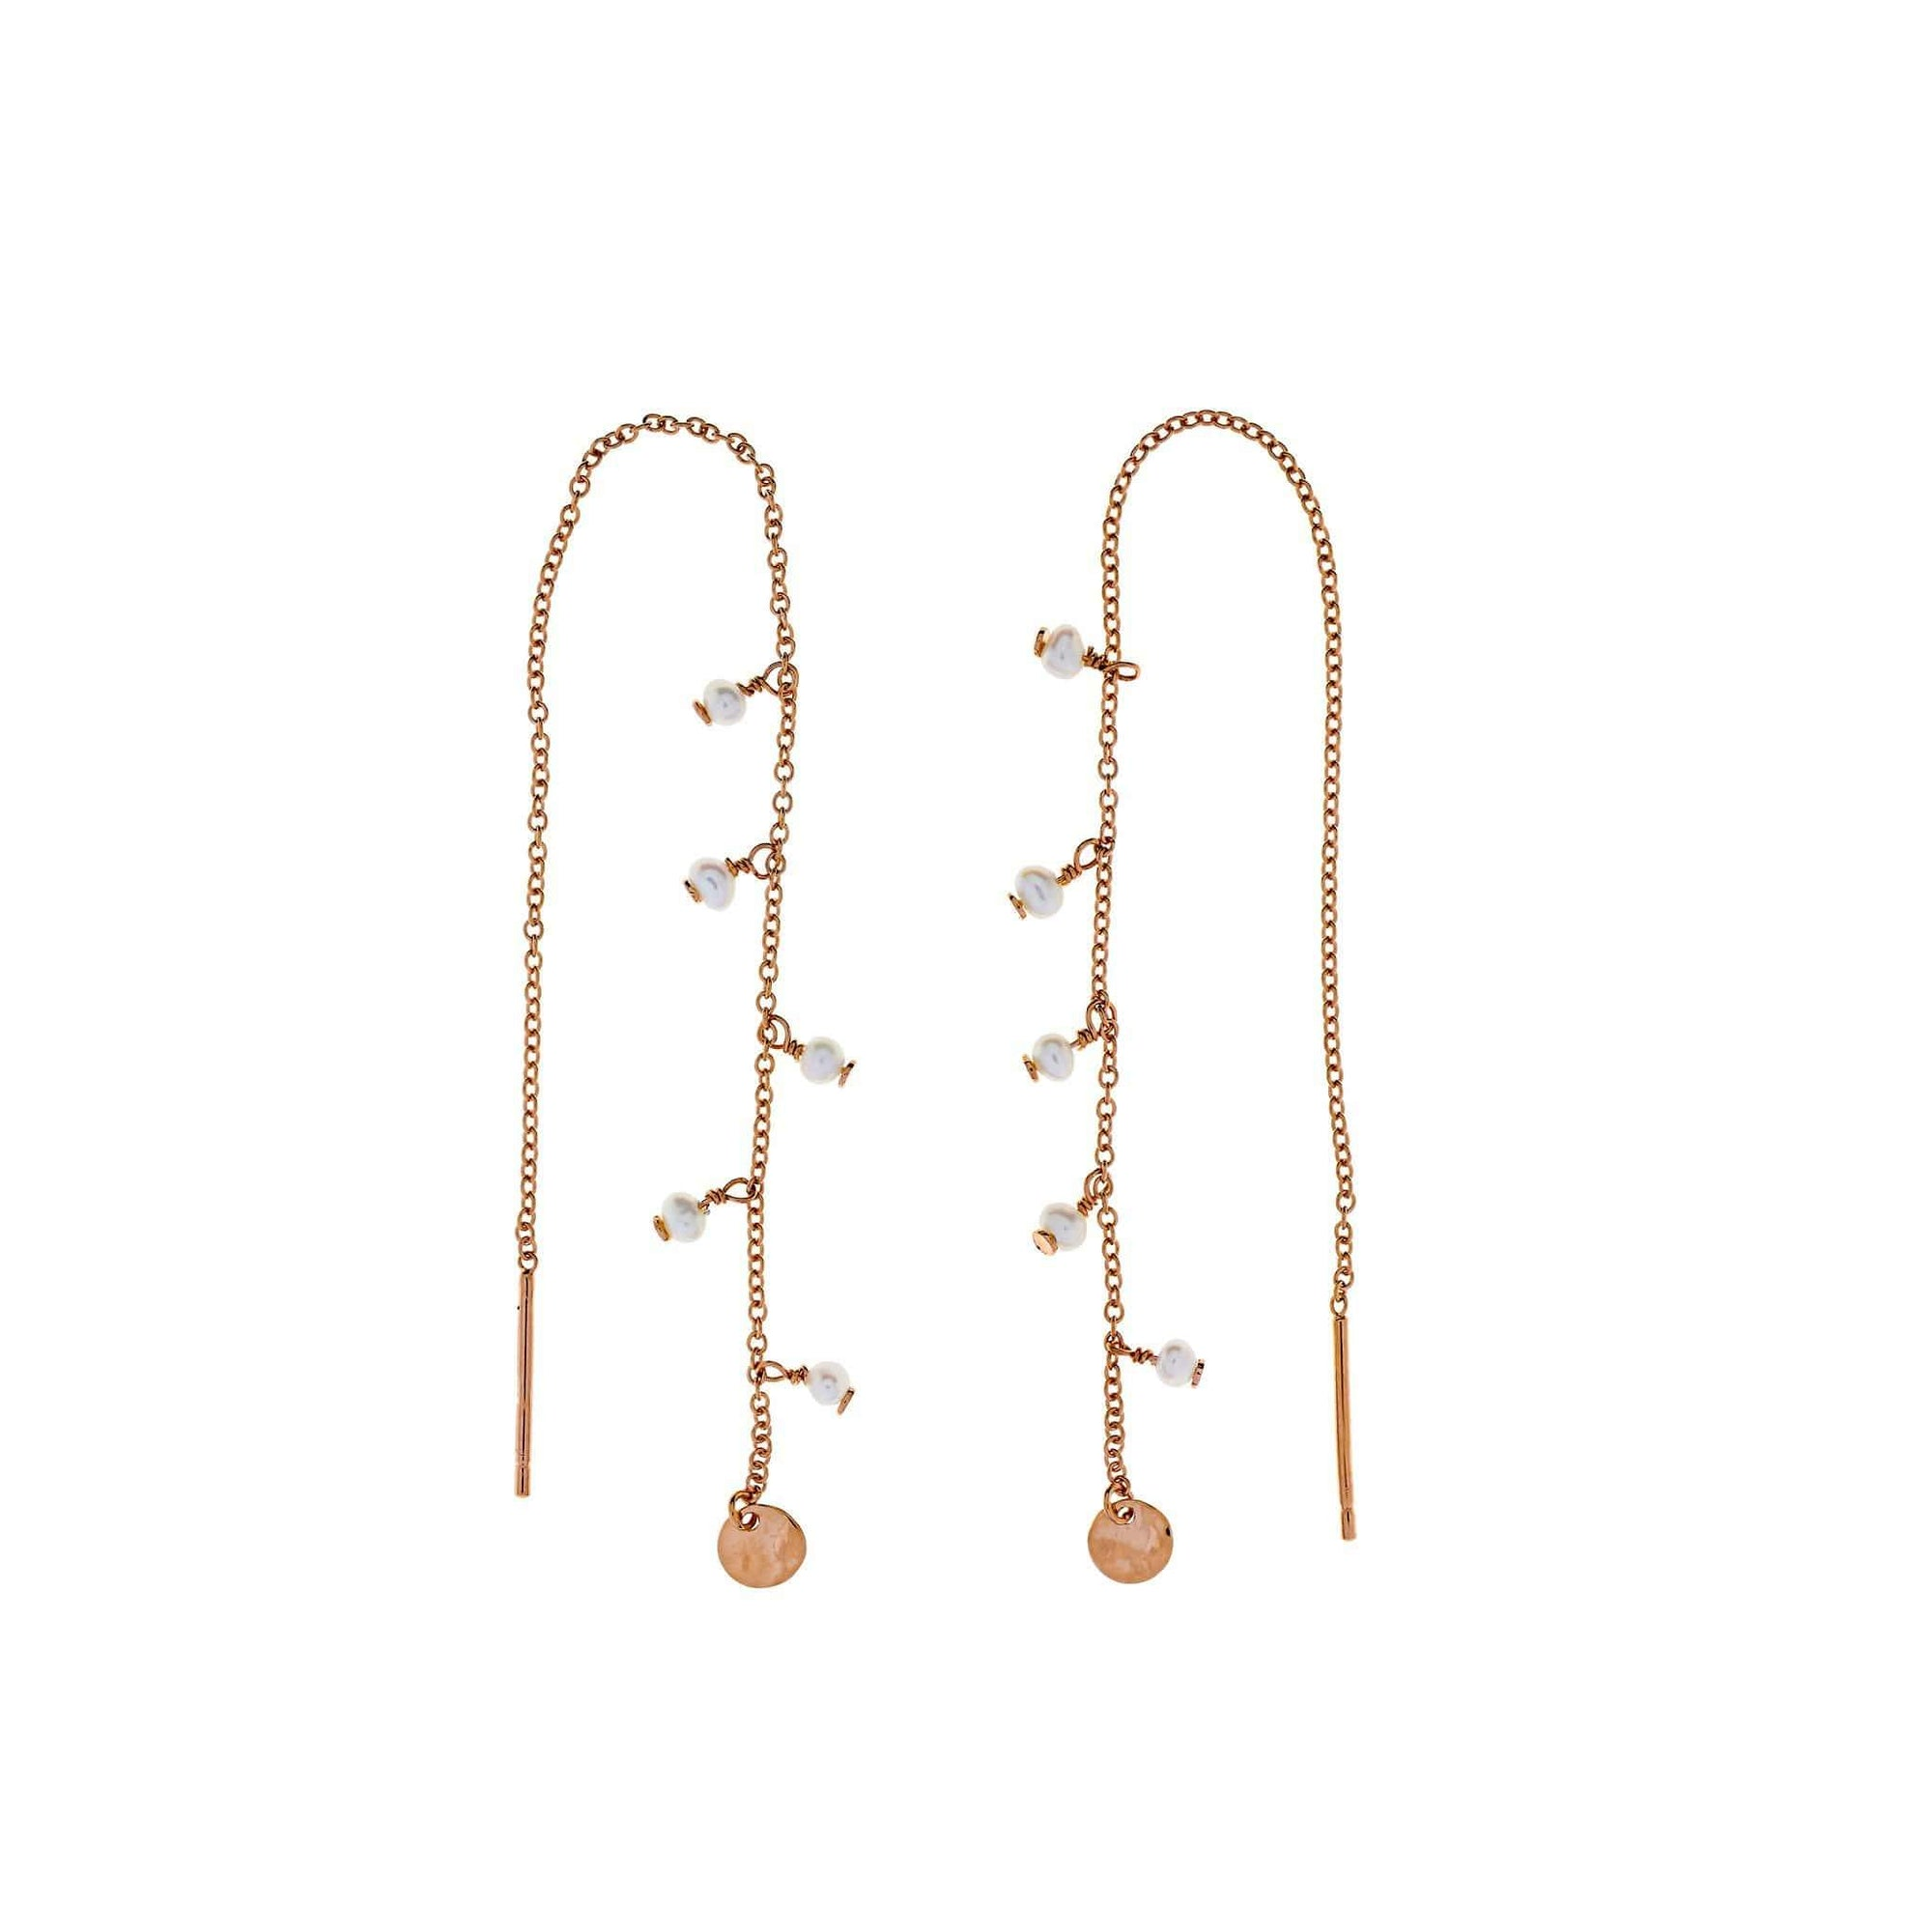 Rose Gold Vermeil Tribeca Pearl & Disc Pull Through Earrings